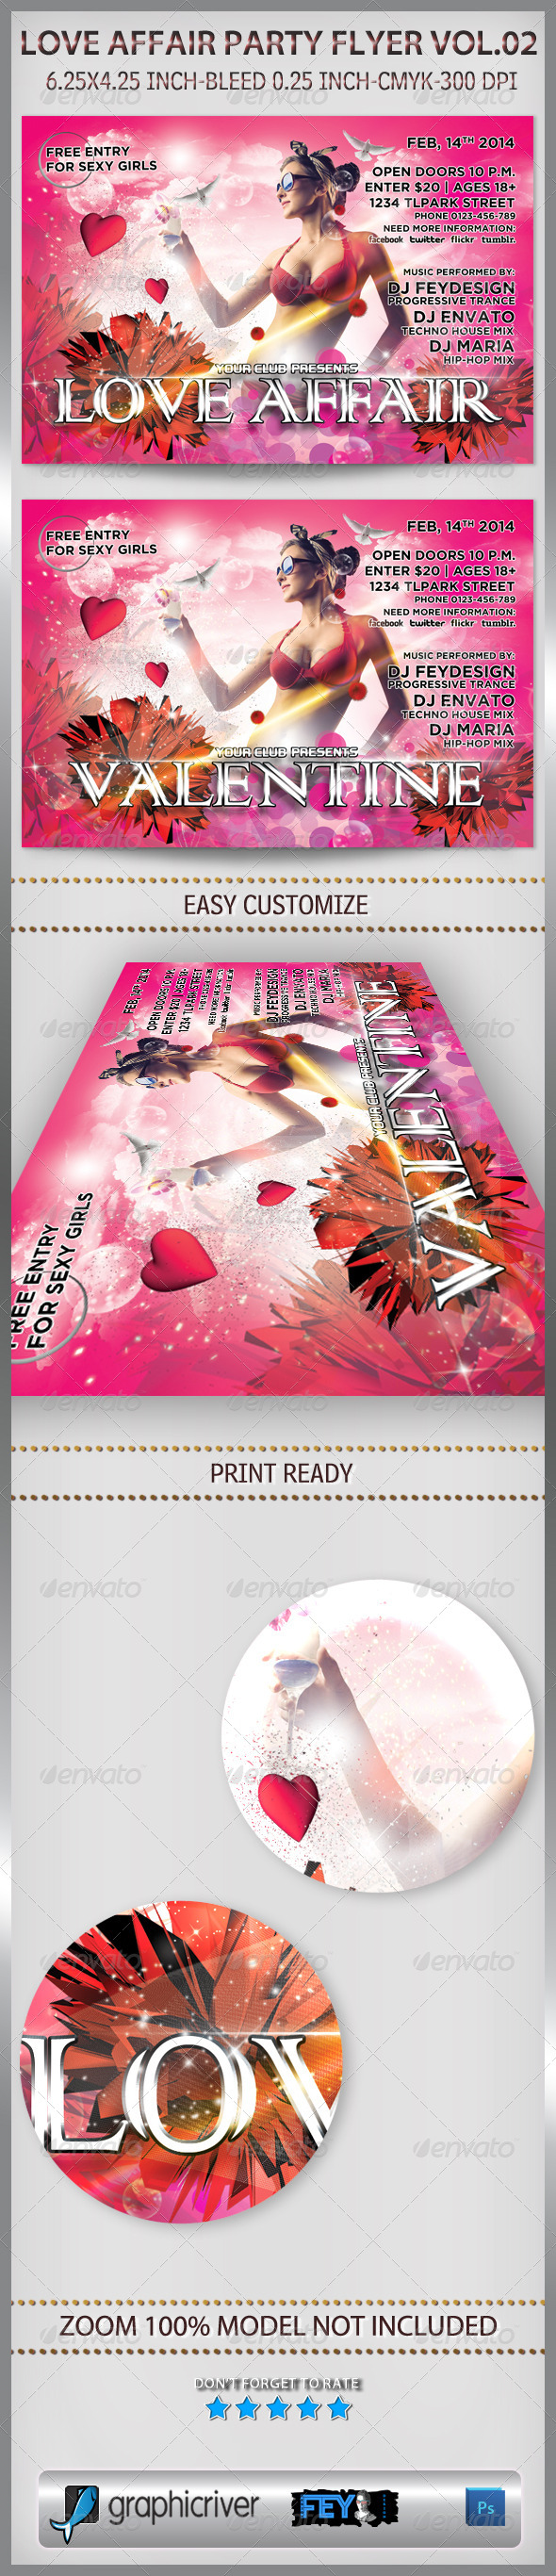 Love Affair Party Flyer Vol.02 - Events Flyers